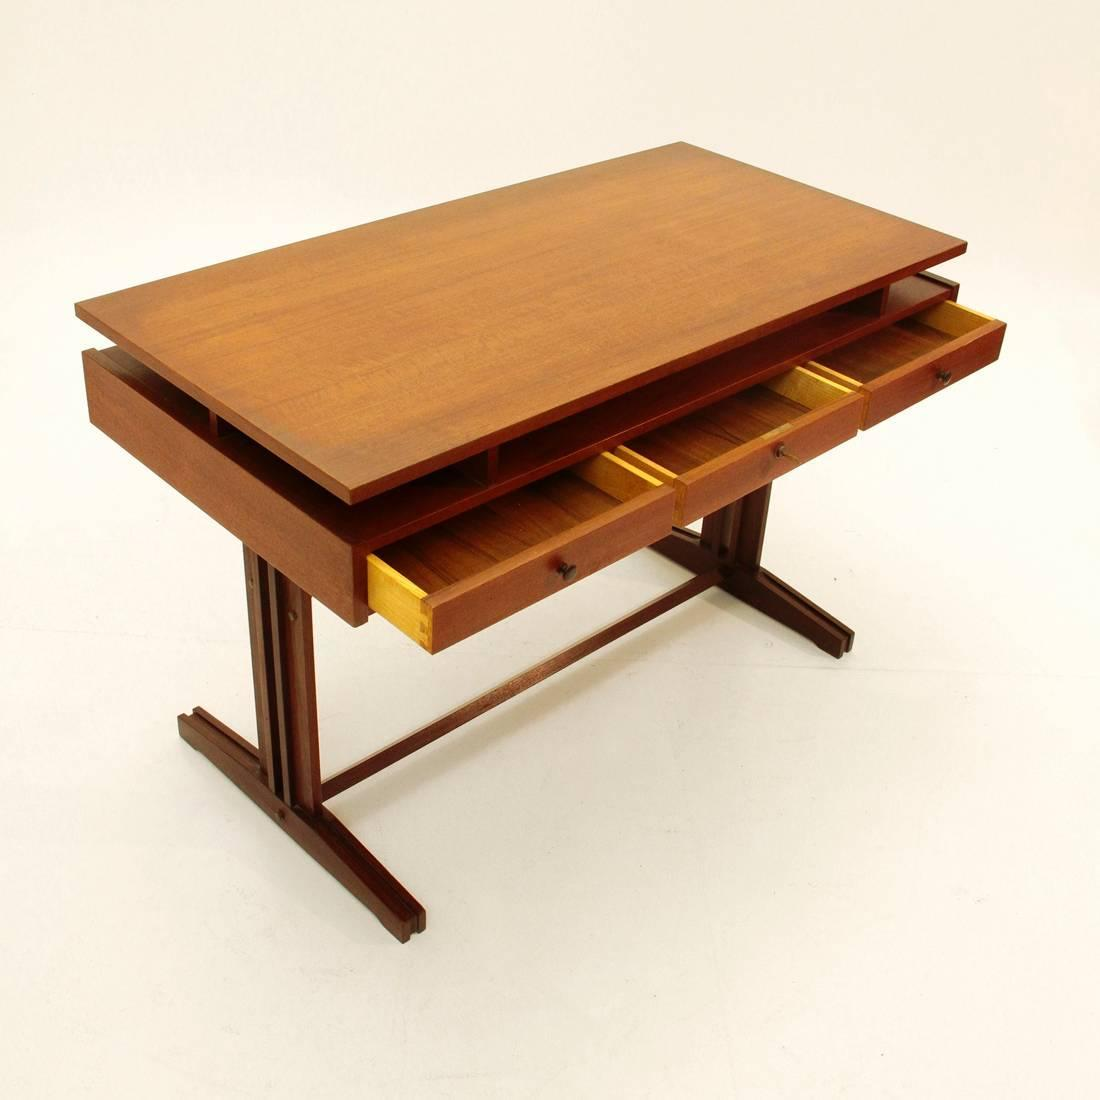 Italian Teak Desk With Two Chairs 1960s At 1stdibs